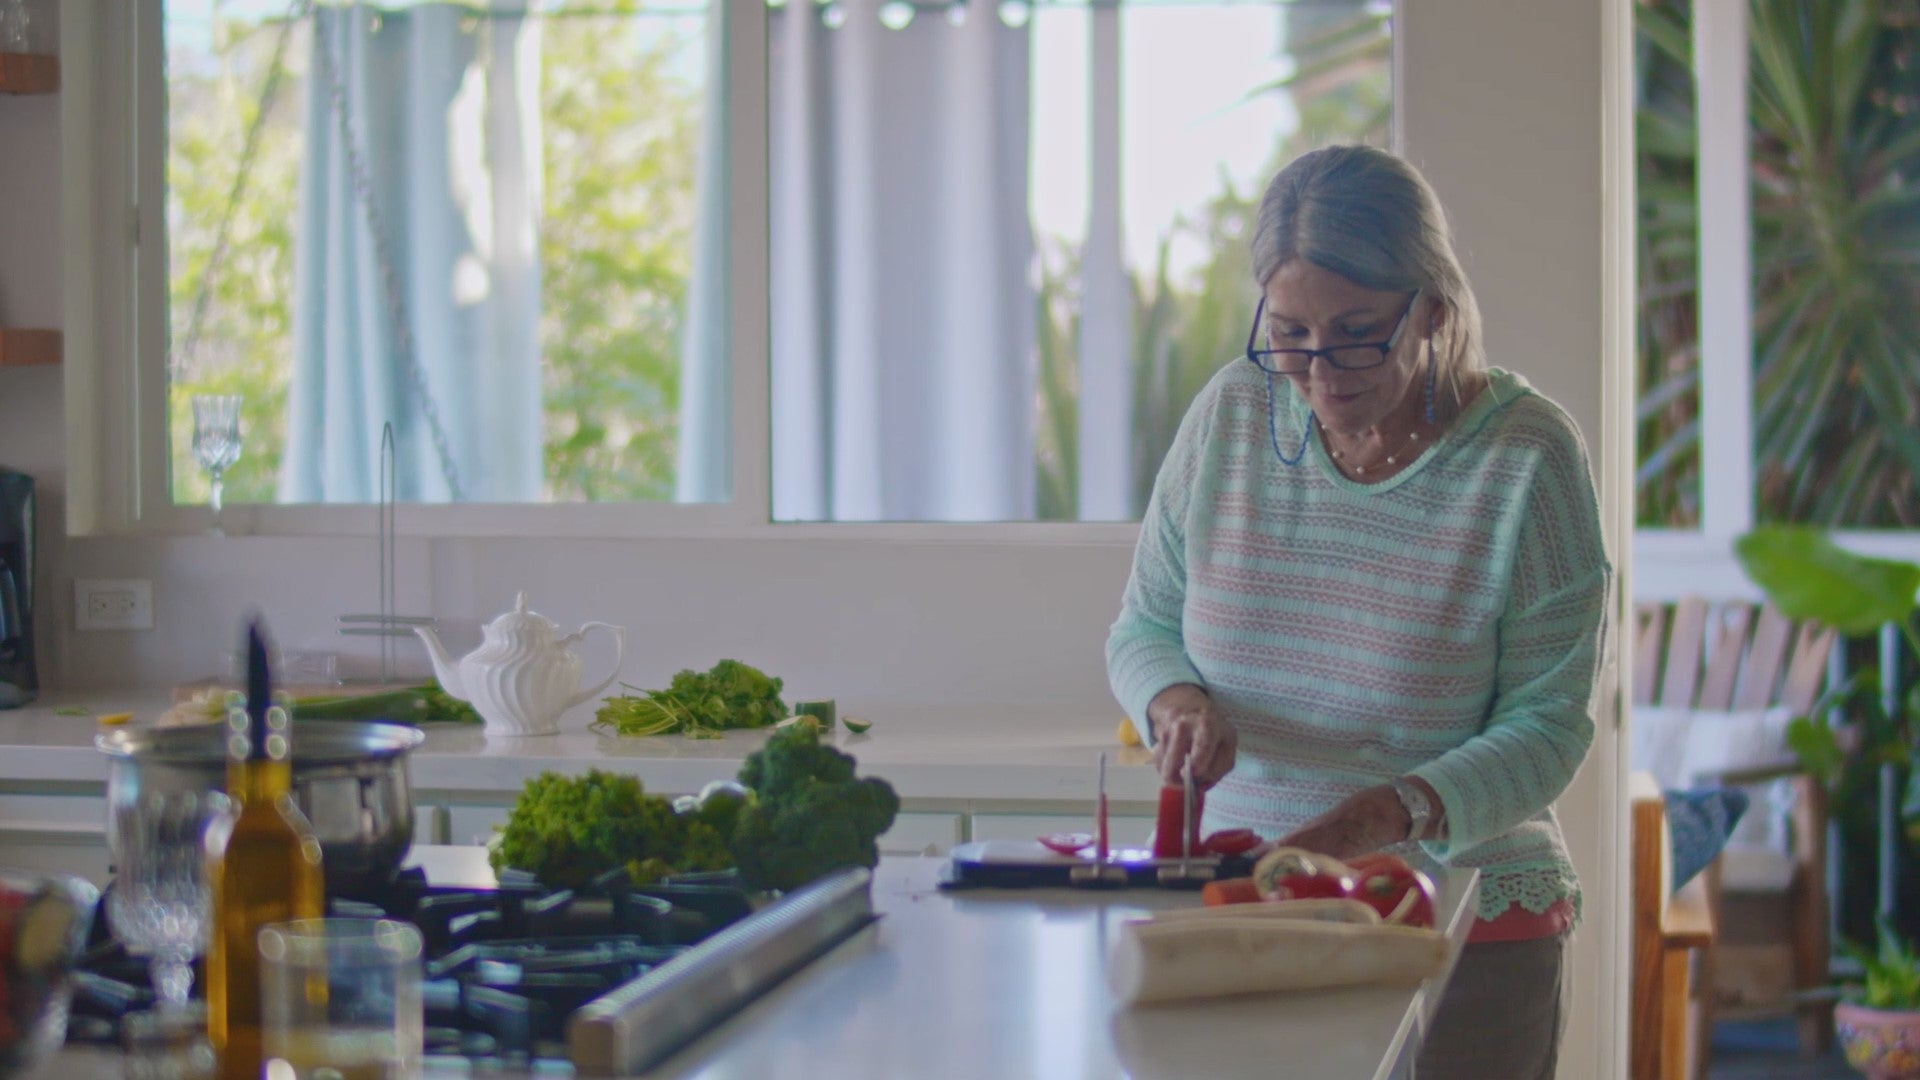 Cooking with Arthritis, stroke or trigger finger